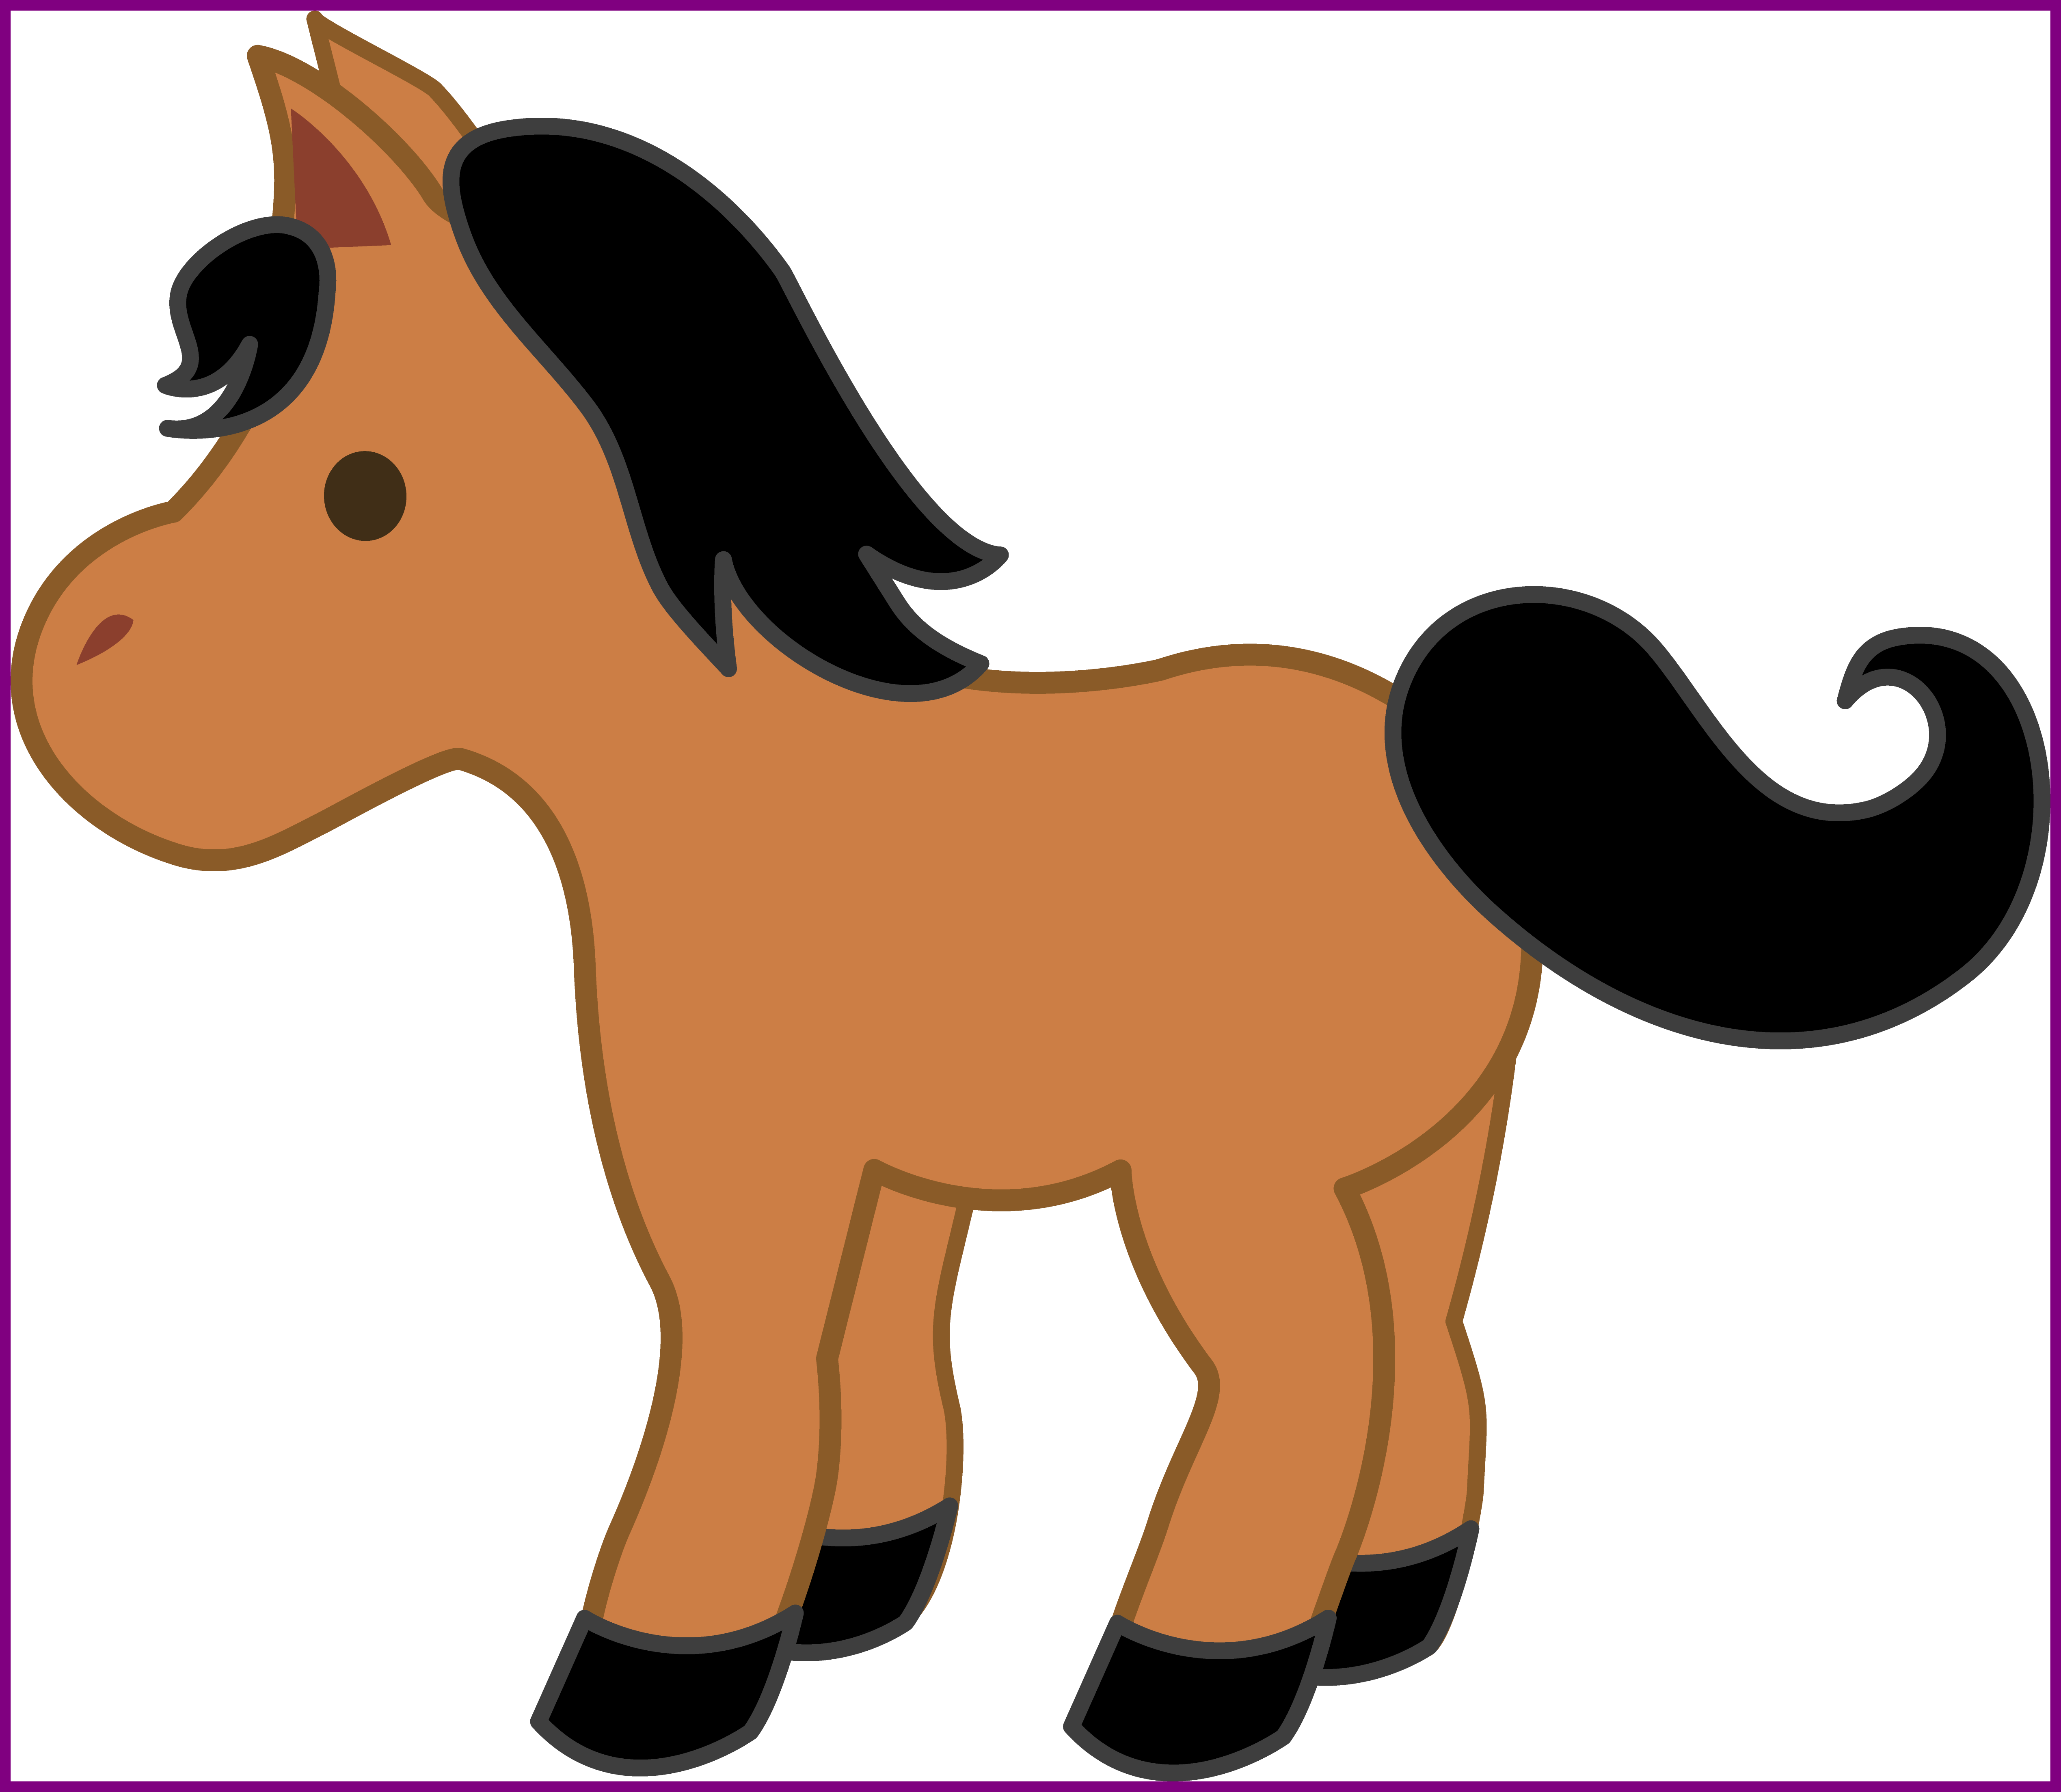 Flies clipart cute. Horse images real and